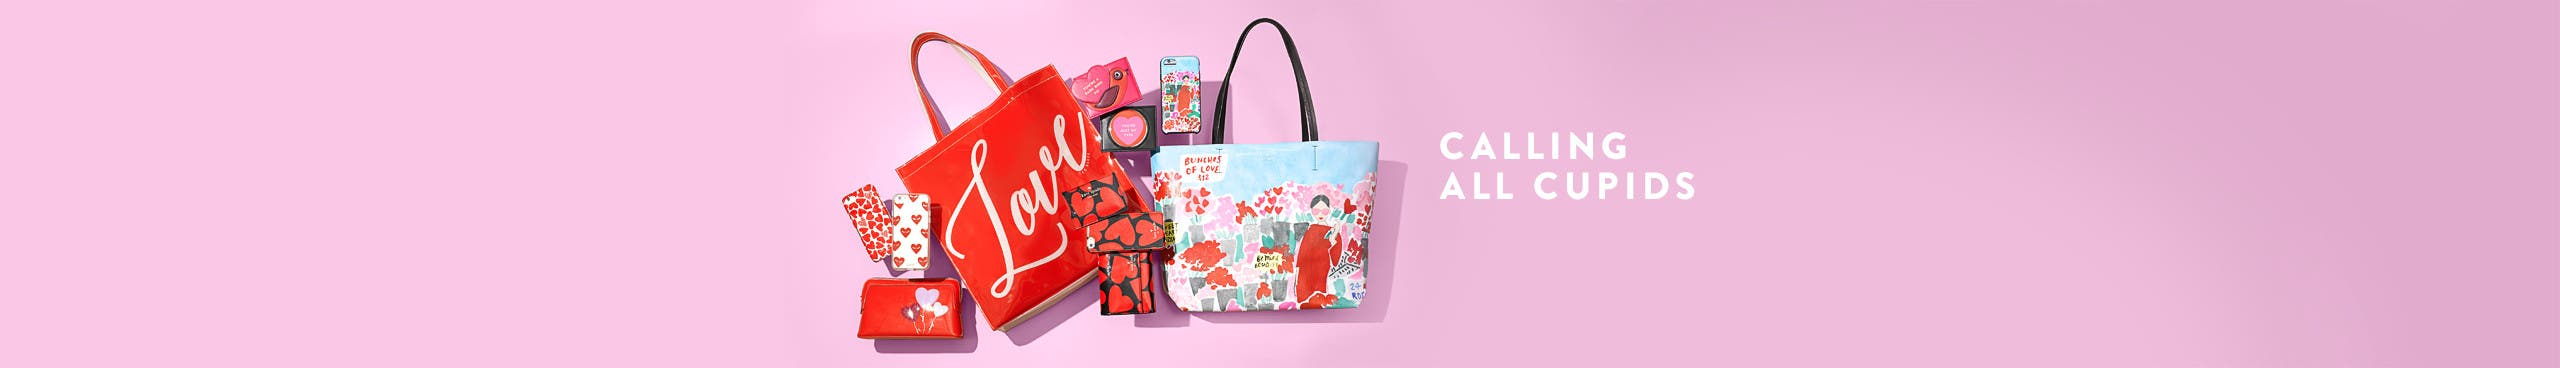 Calling all cupids: women's handbag gifts.